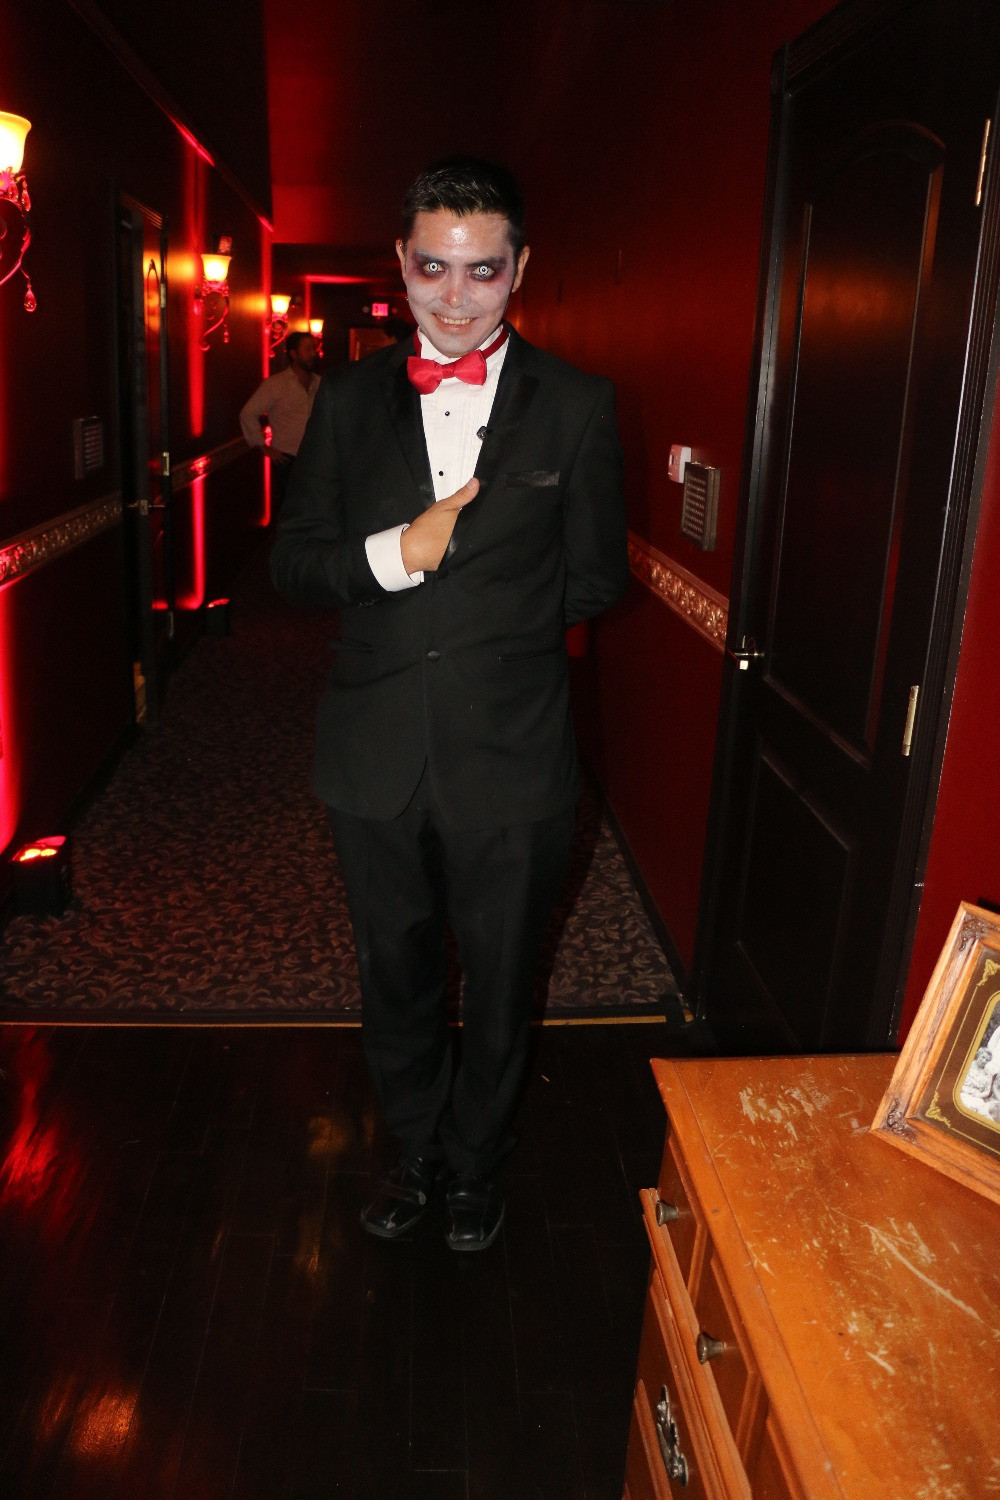 Zombie Bellhop (Pictured by Keith McCalebb)